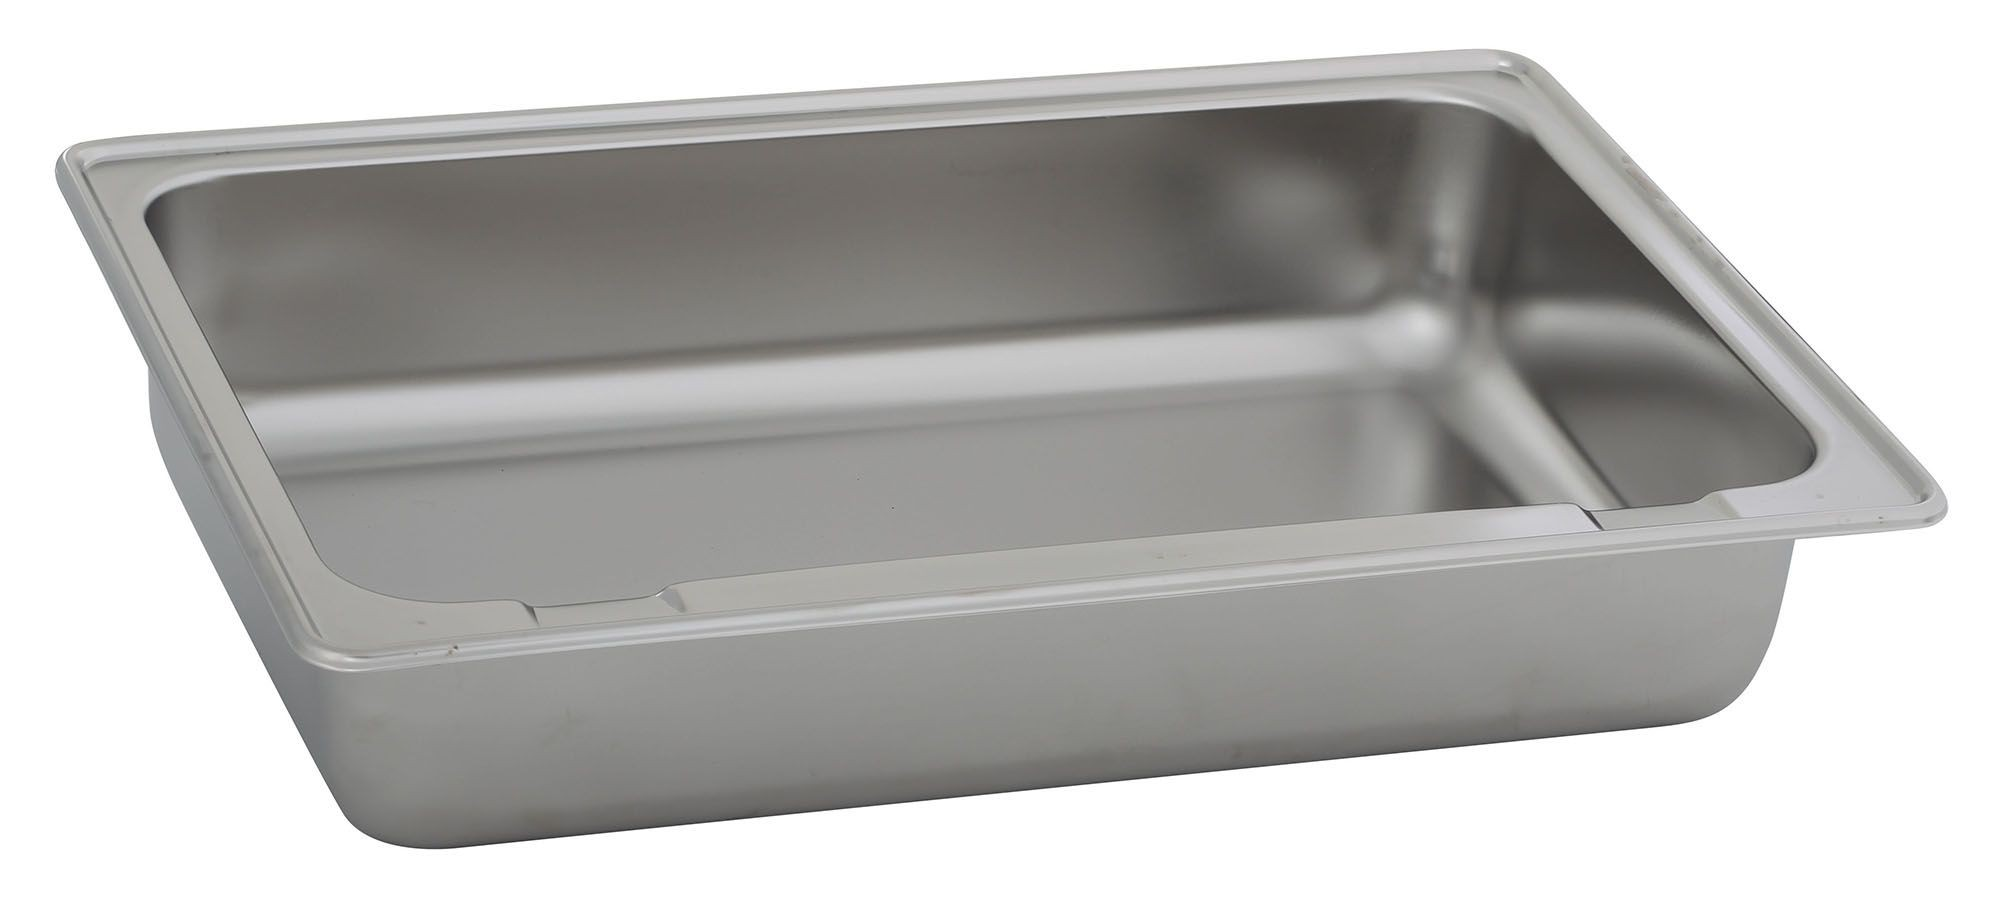 Water Pan for 8 Qt Virtuoso Roll-Top Chafers 101A and 101B